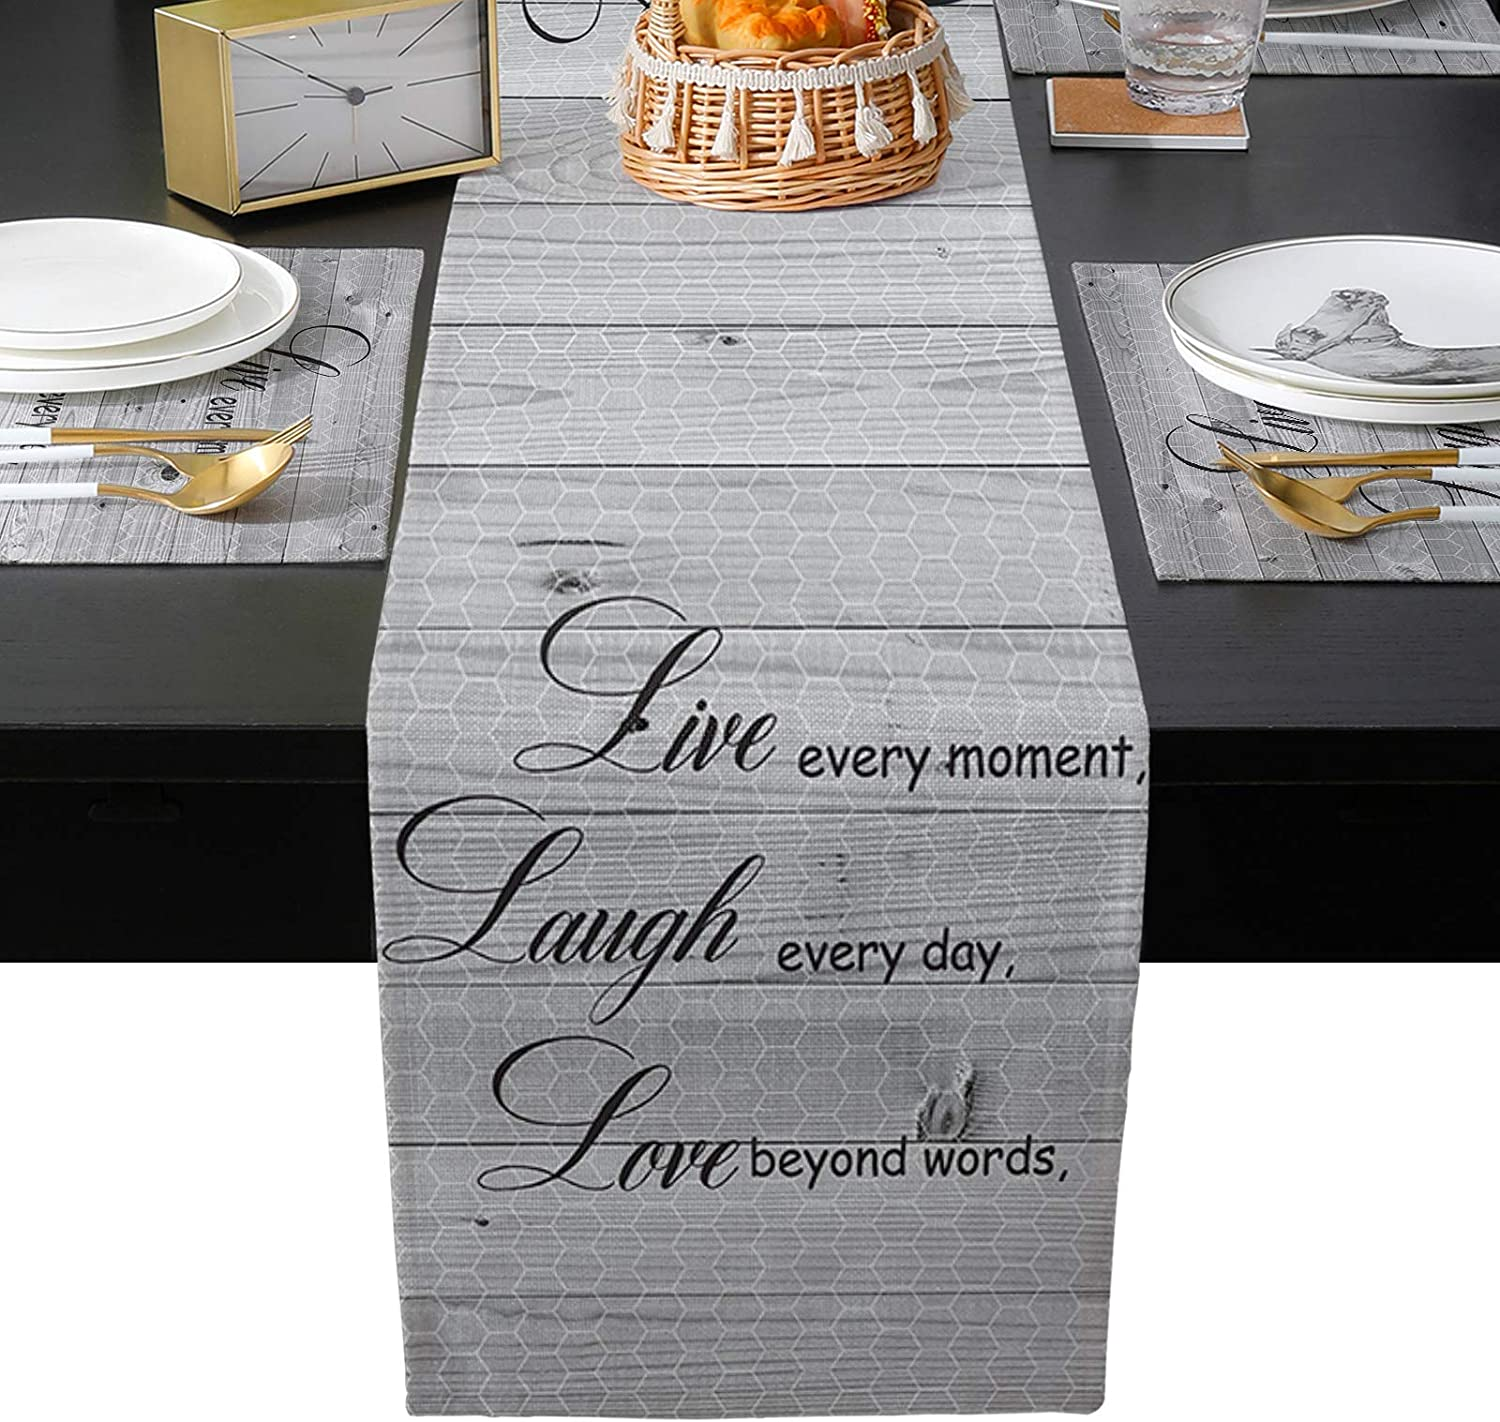 Motivation Motto Table Mats Sets Be super welcome Placemats inch Set 13 of 5% OFF 19 x